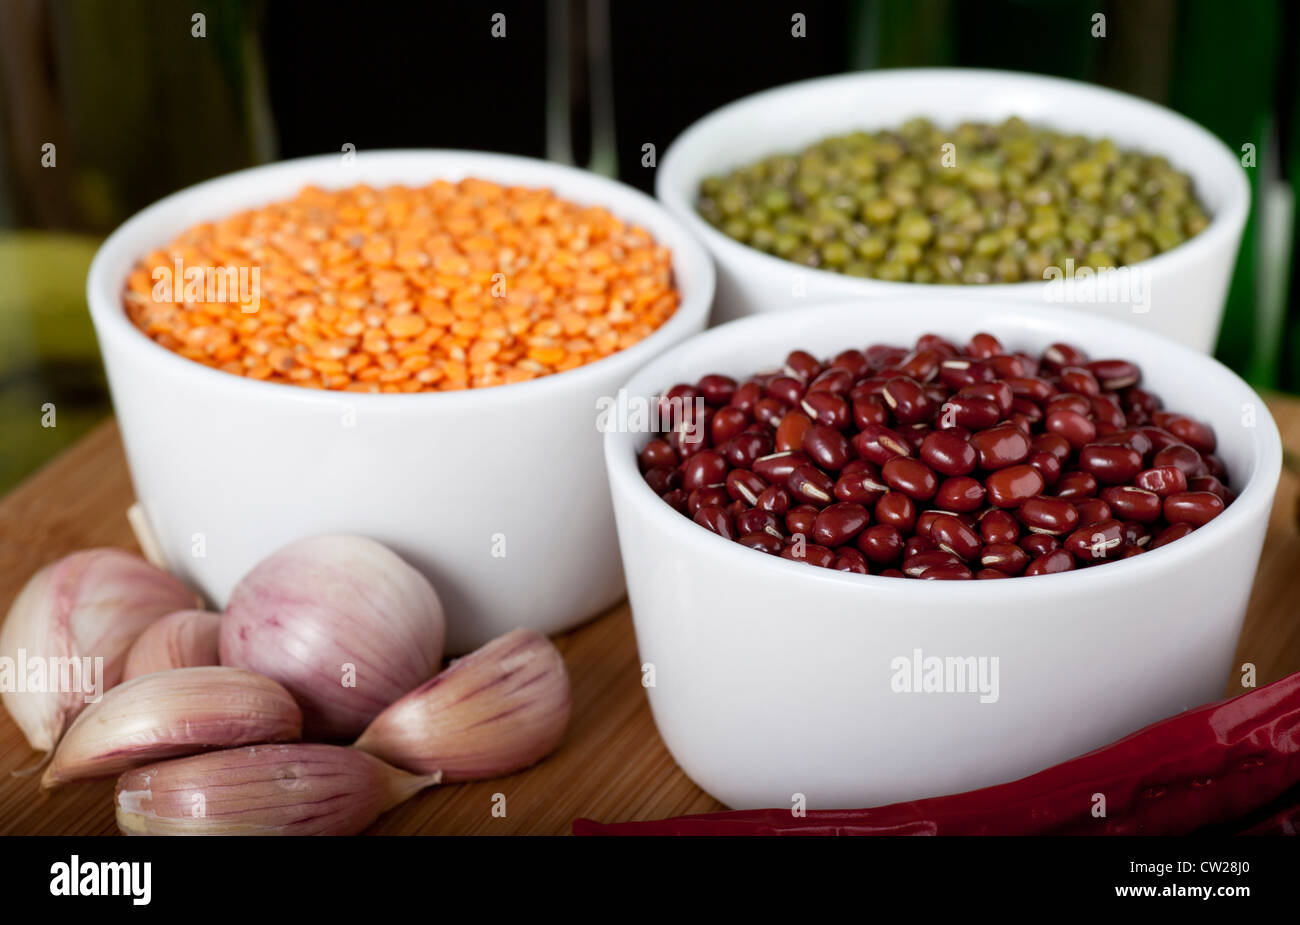 Three types of beans: lentils, mung and adzuki, with cloves of garlic. - Stock Image